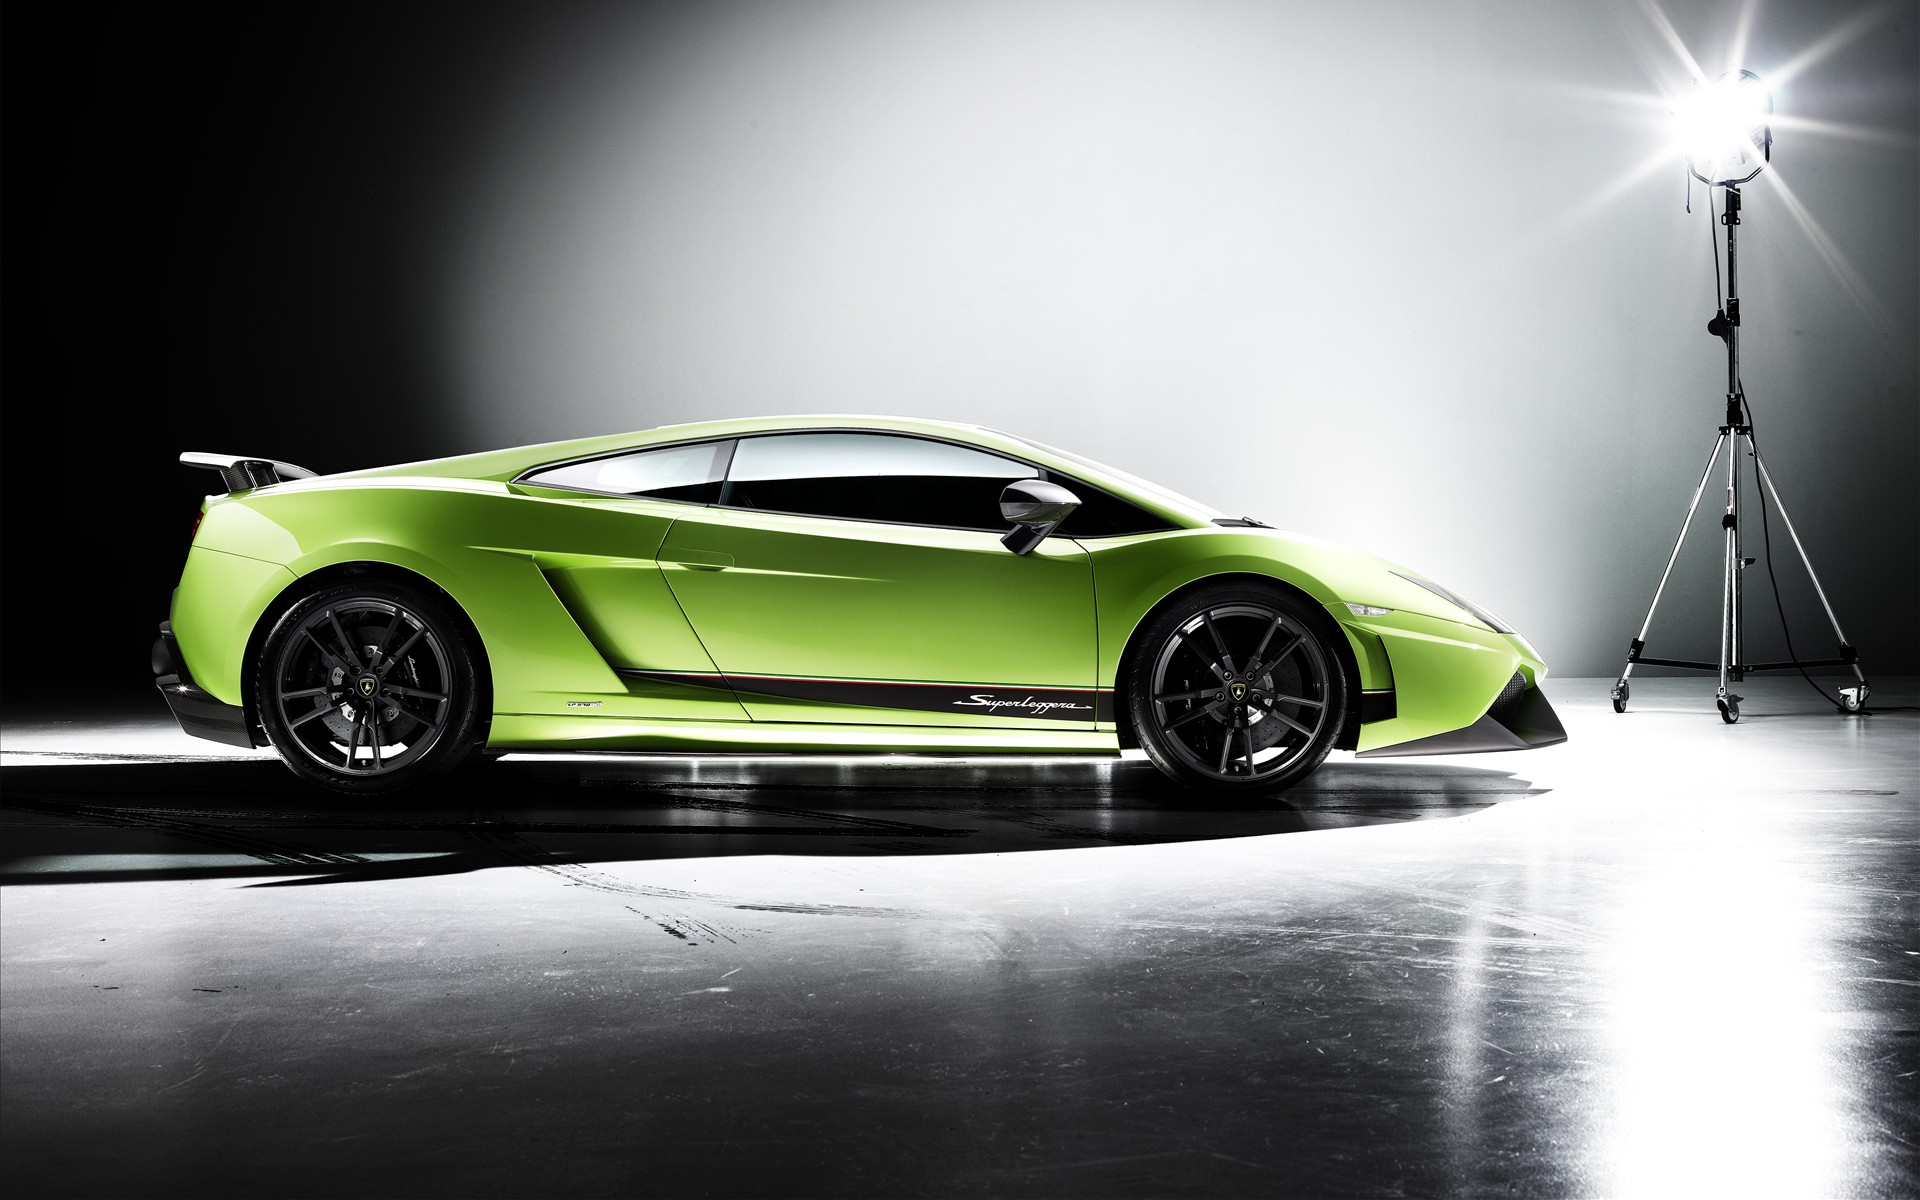 2011 Lamborghini Gallardo LP 570 4 Superleggera 2 741.51 Kb